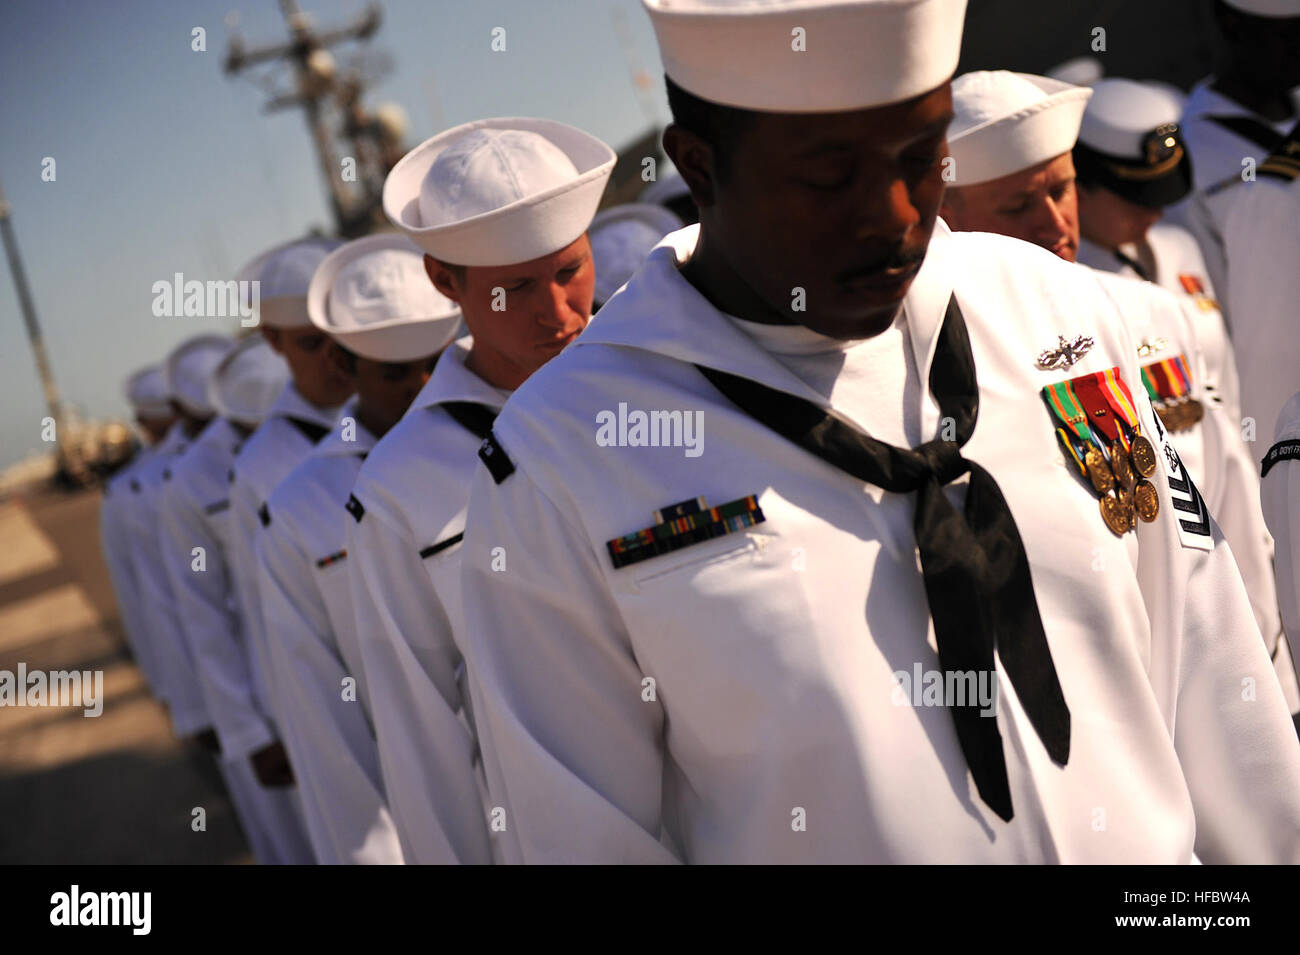 110729-N-YR391-015 MAYPORT, Fla. (July 29, 2011) Sailors assigned to the guided-missile frigate USS Doyle (FFG 39) - Stock Image